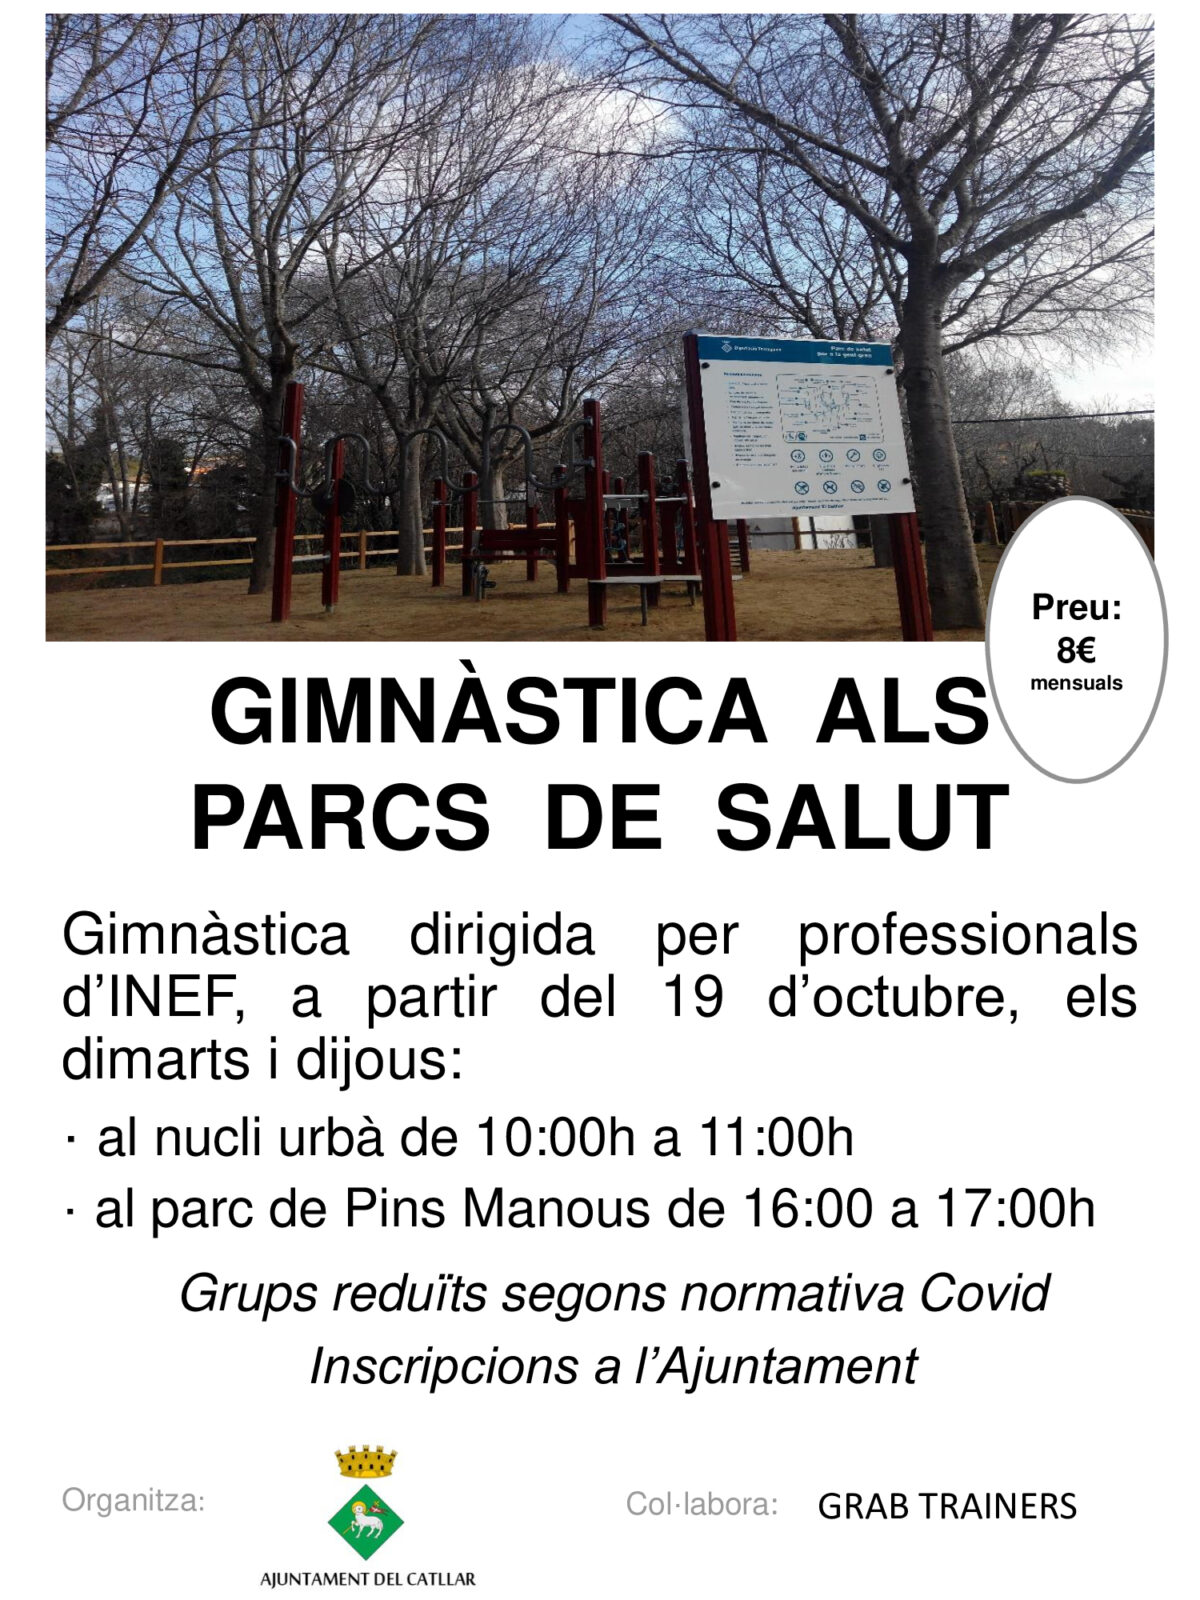 GIMNASIA PARQUES DE SALUD – PINS MANOUS